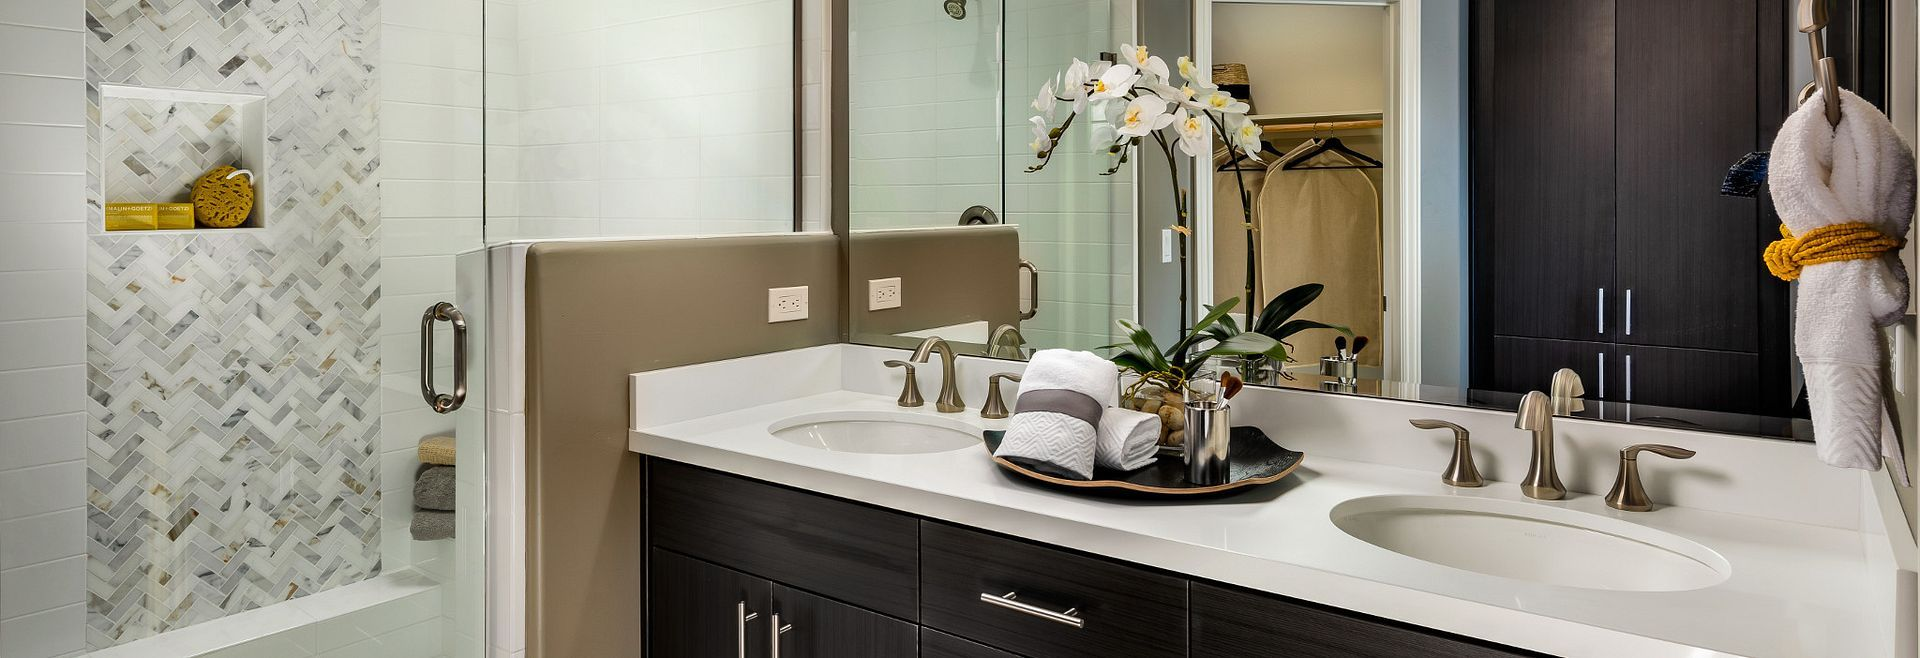 Bathroom featured in the Sage By Shea Homes - Trilogy in Santa Barbara, CA